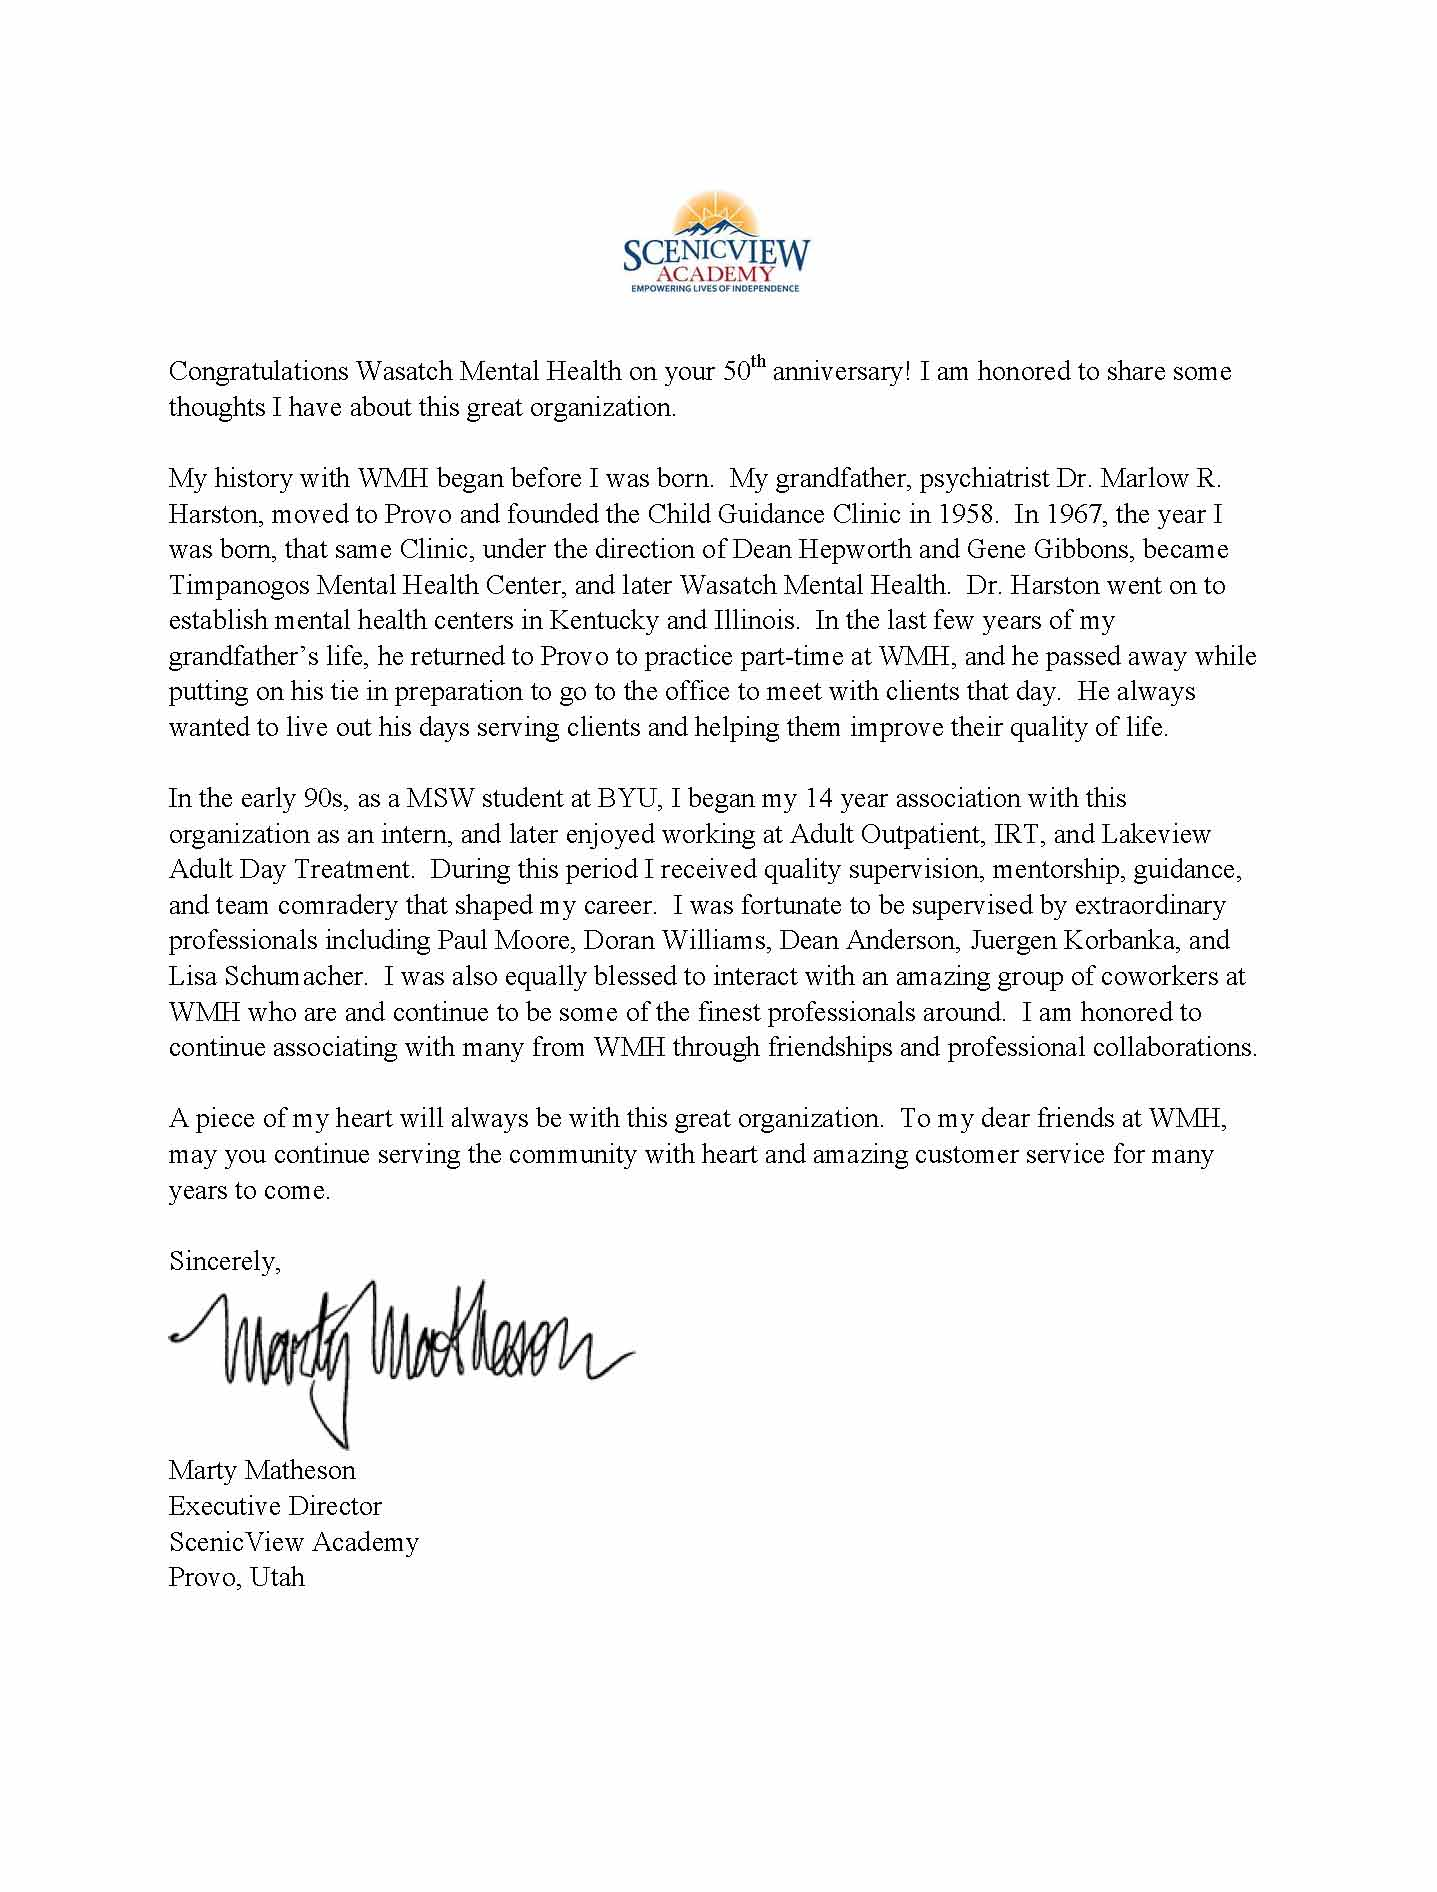 Letter from Marty Matheson